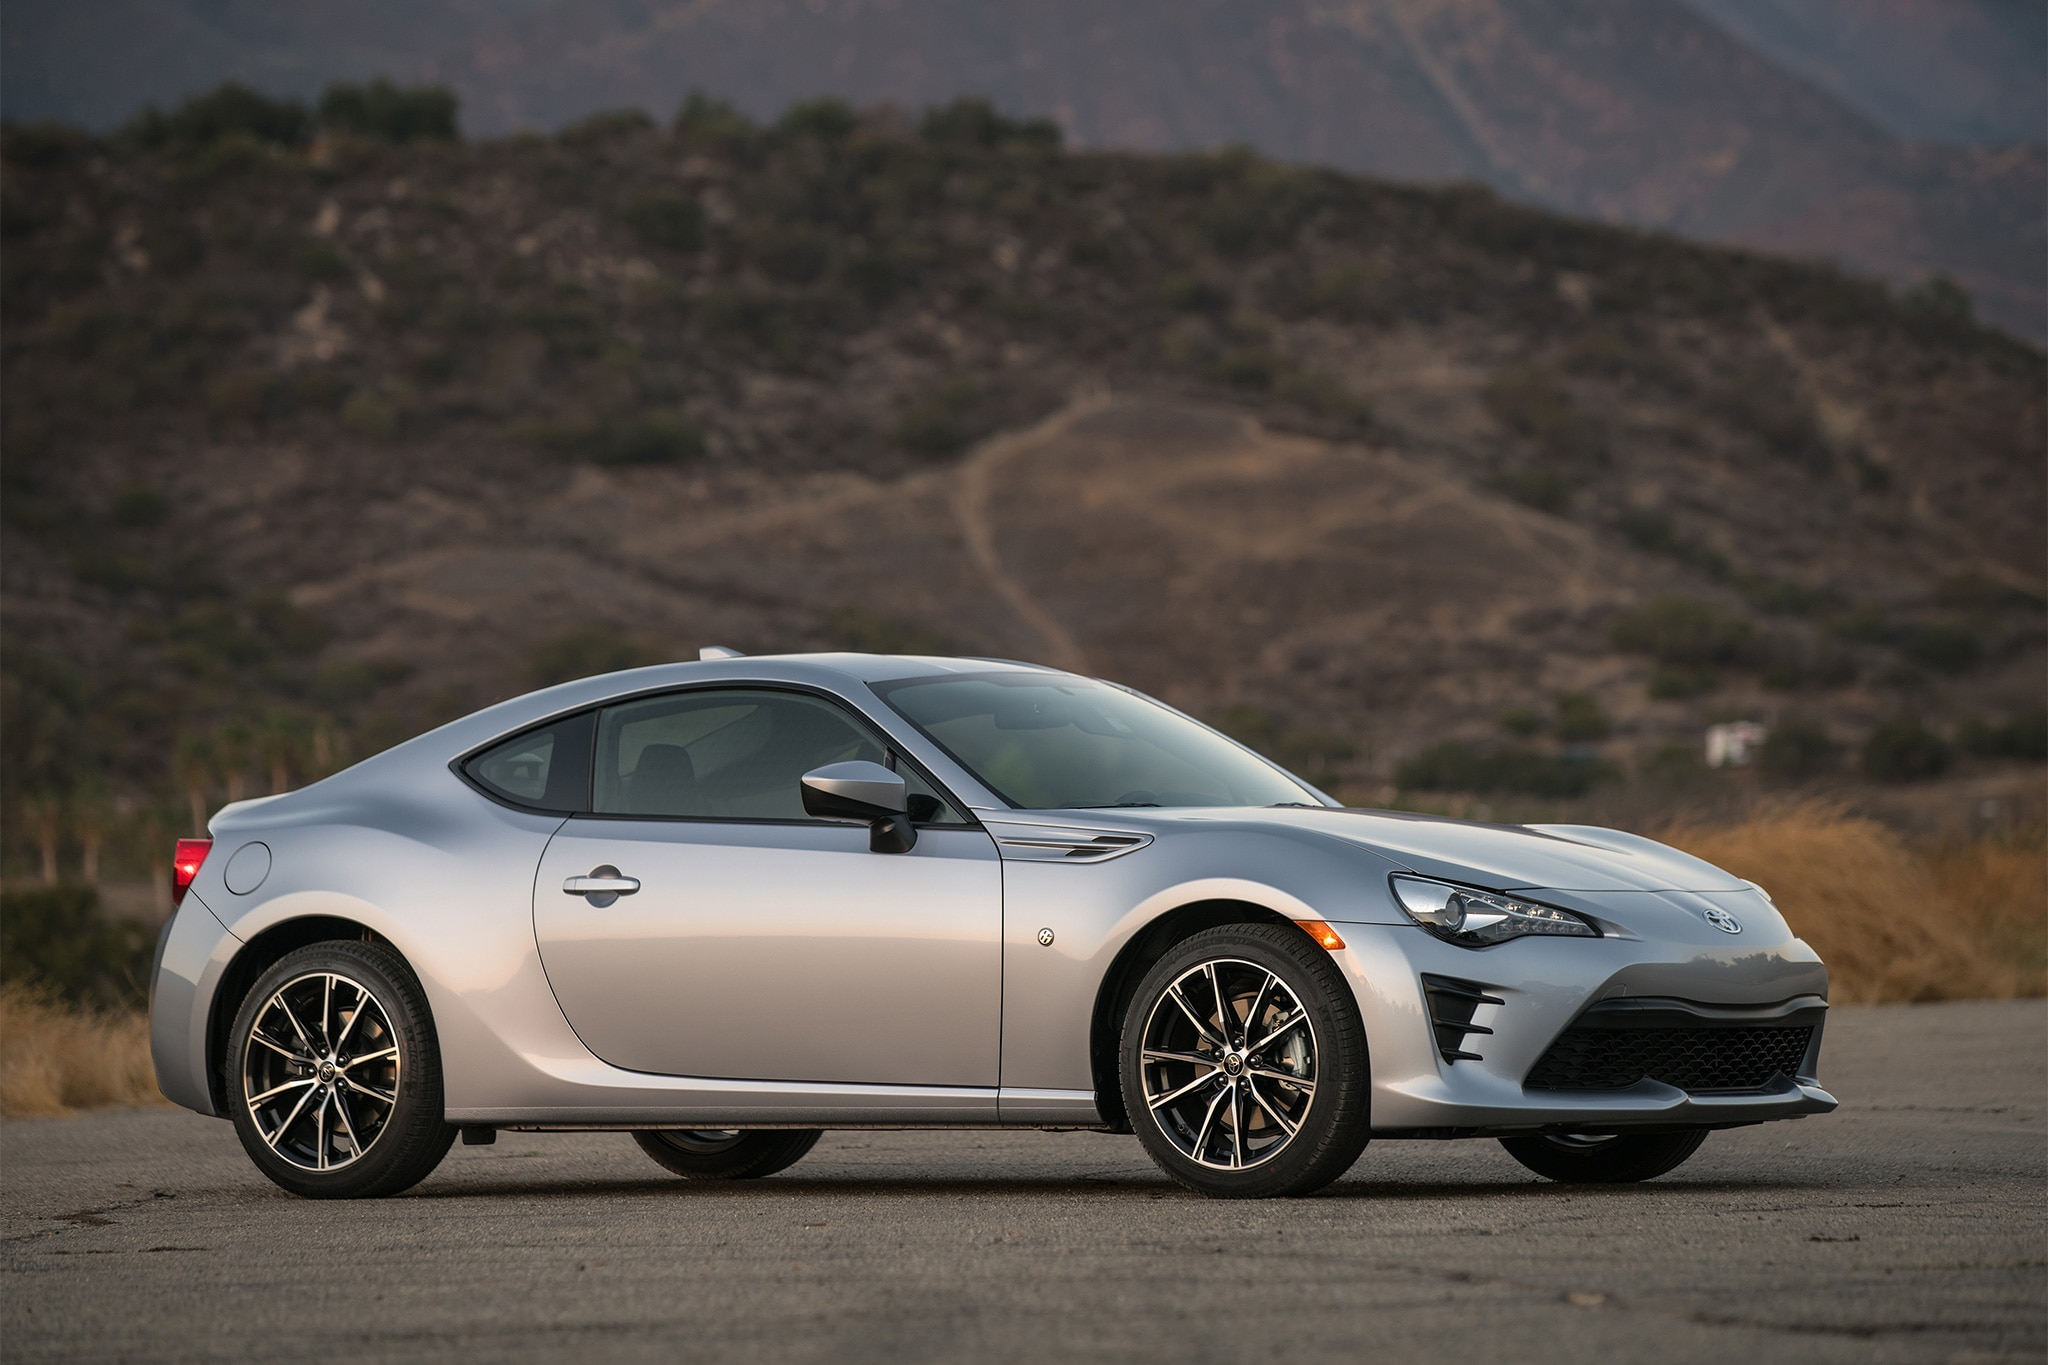 2019 Toyota Supra Spied (For Real This Time) | Automobile ...